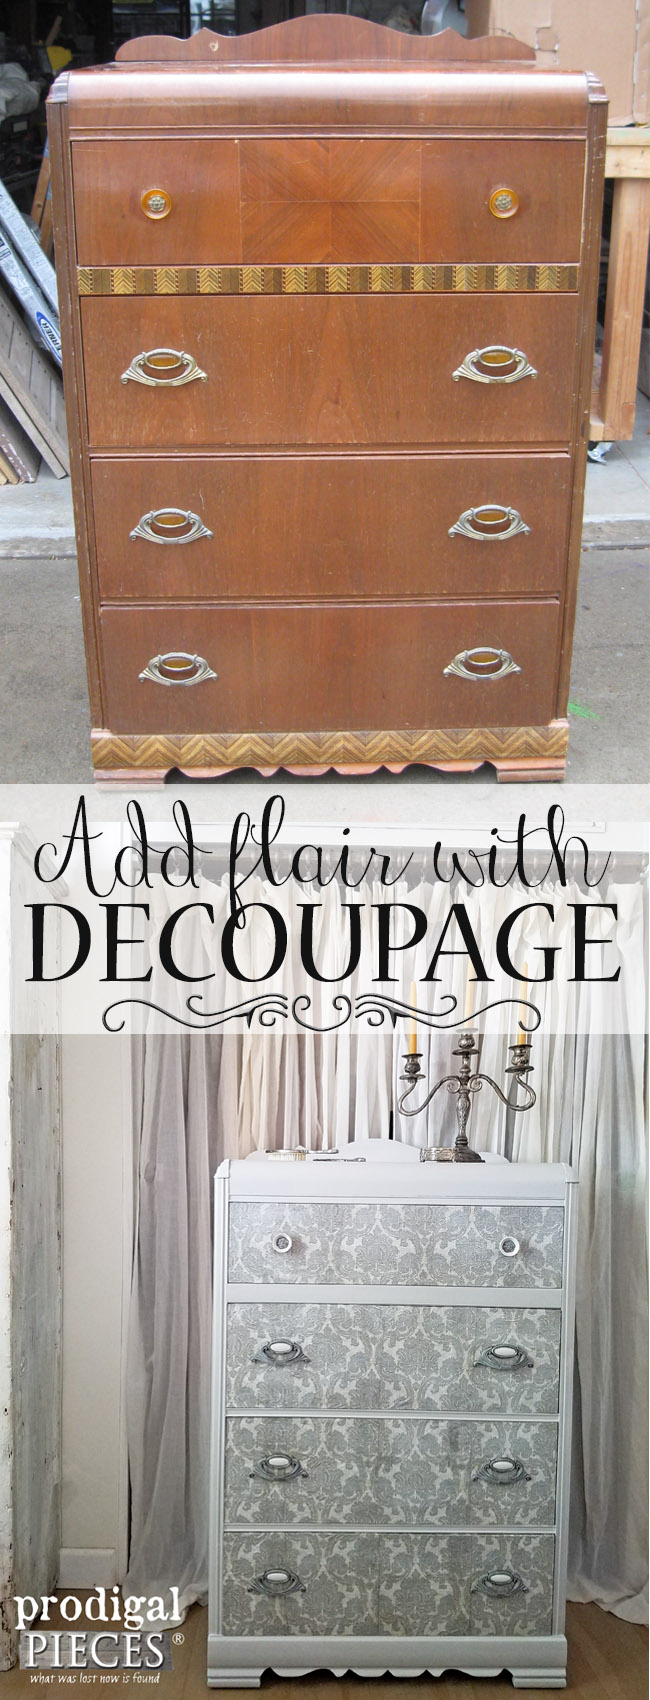 add flair to your furniture with decoupage diy tutorial by prodigal pieces www decoupage ideas for furniture t93 decoupage